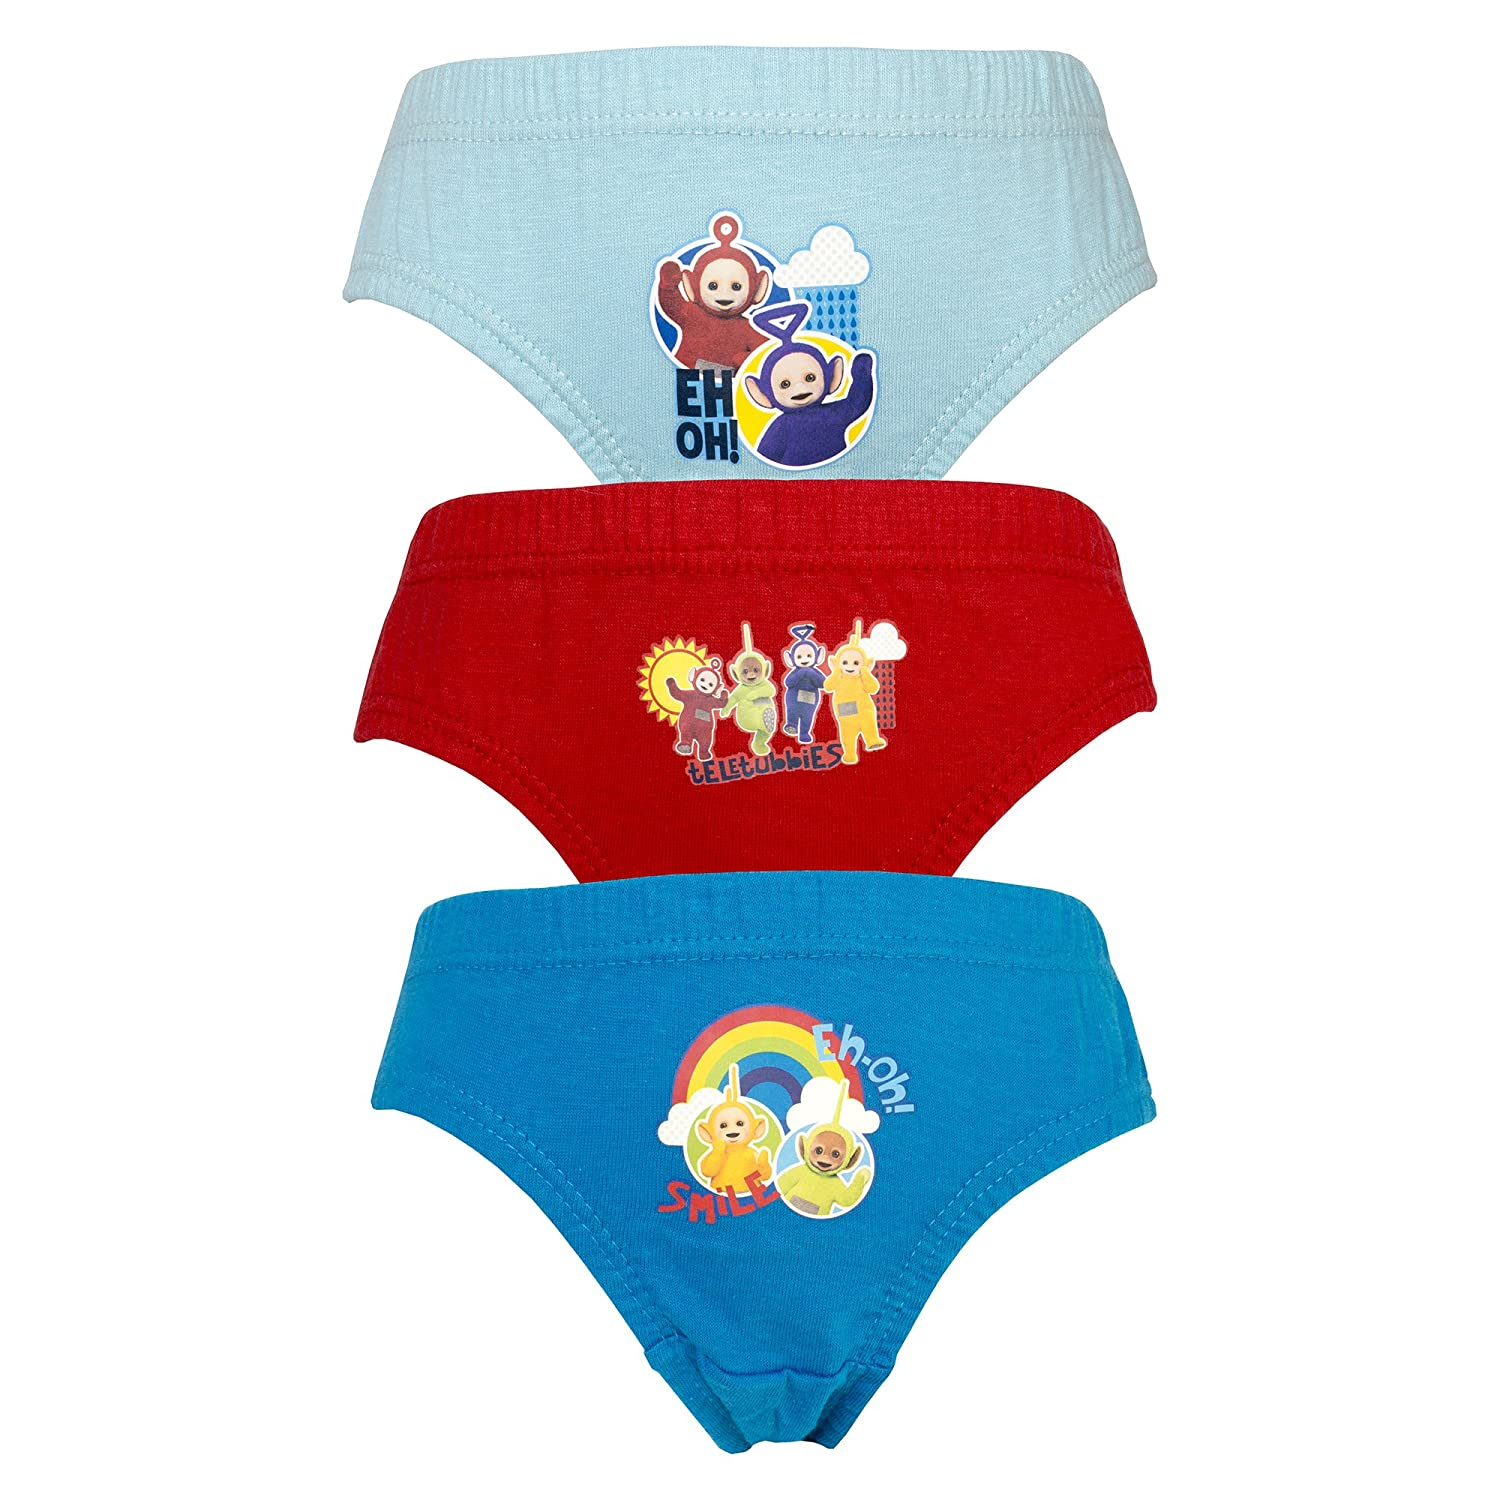 Age 18 Months to 4 Years Cartoon Character Products Teletubbies 3 Pack Boys Pants Briefs Knickers